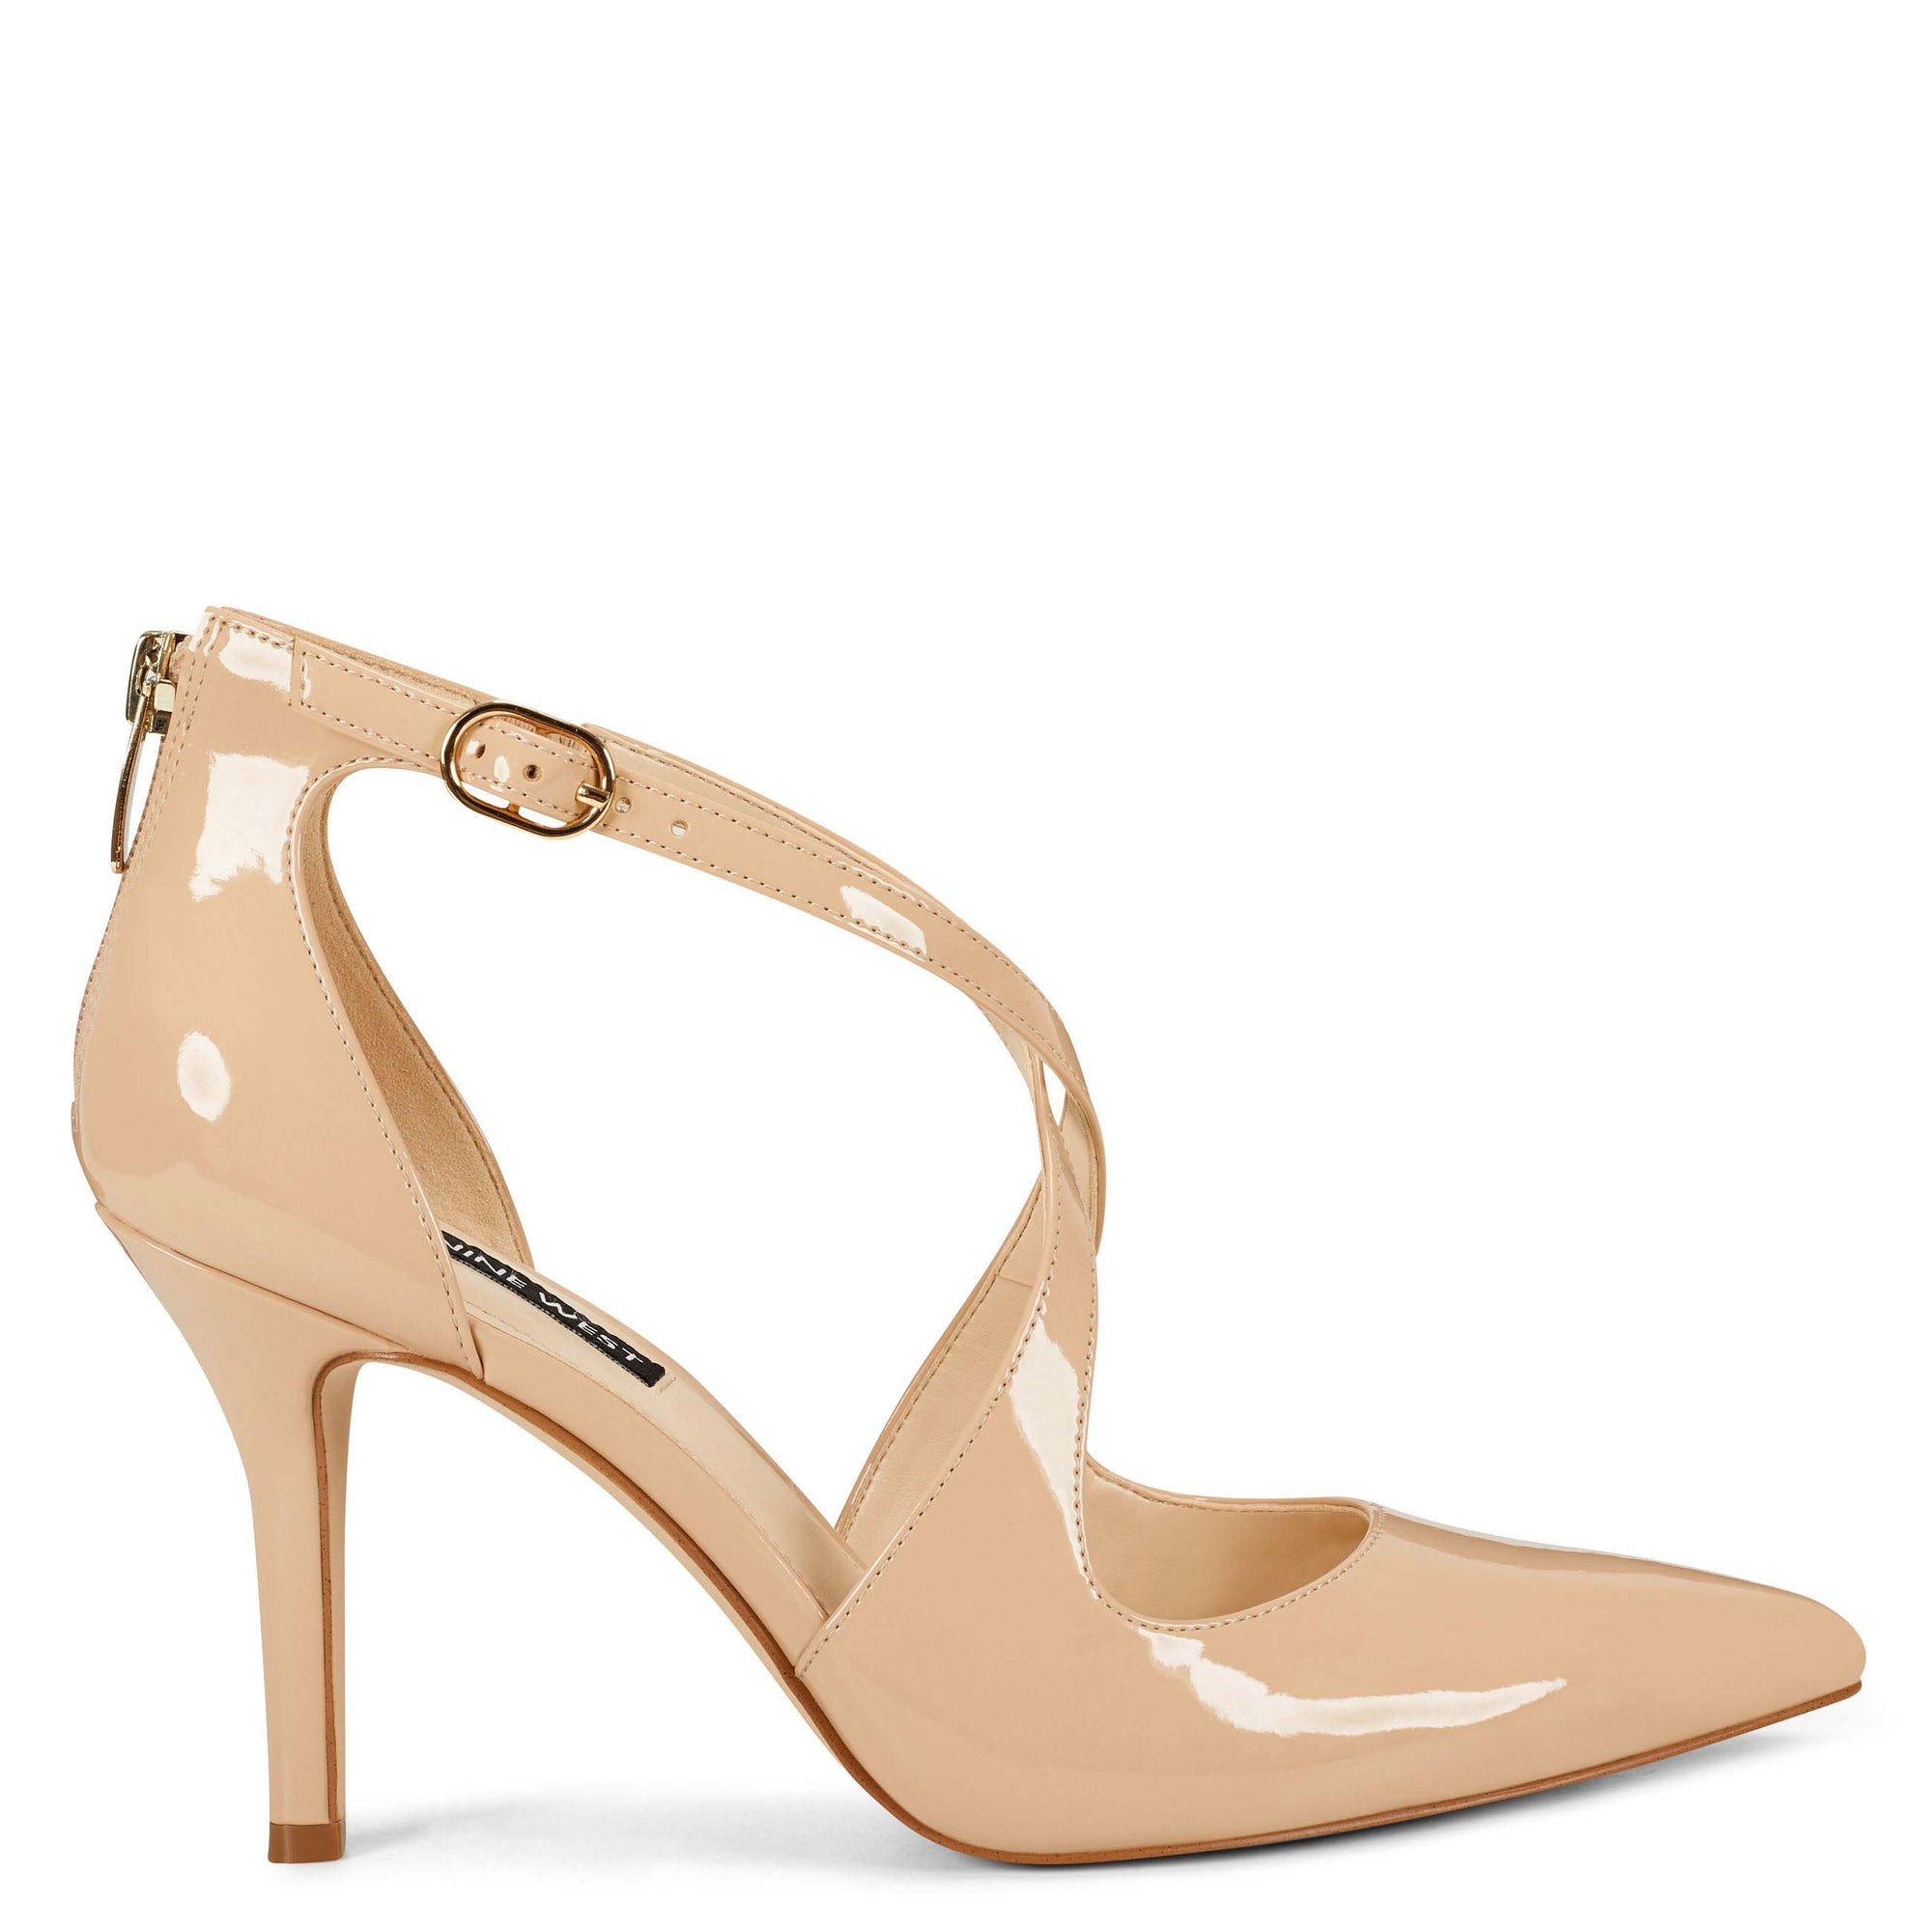 Fayla Dress Pumps